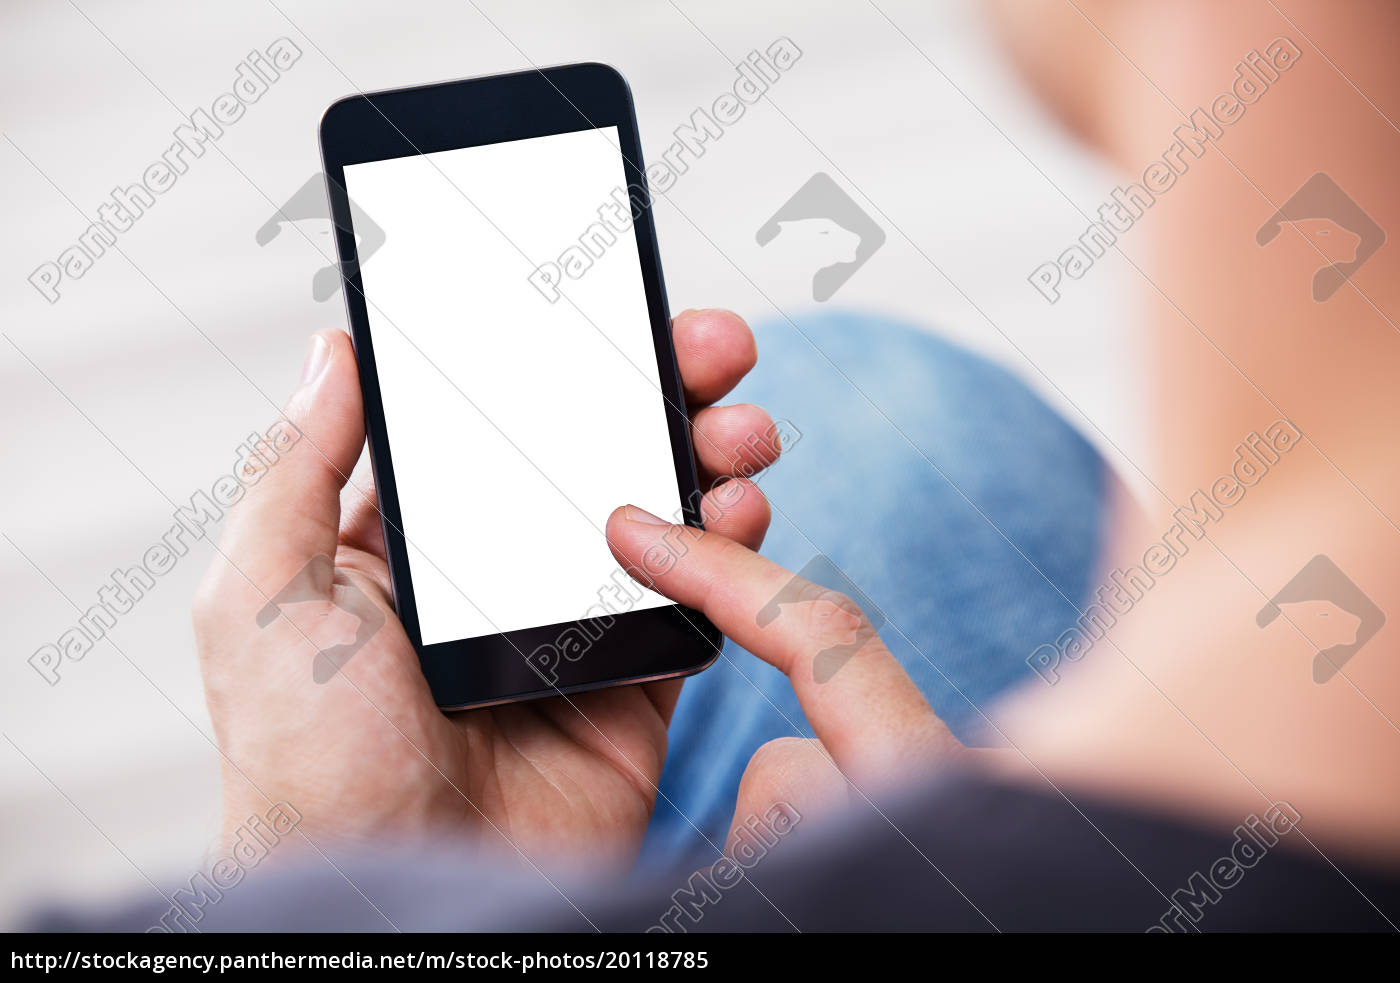 man's, hand, holding, cell, phone, with - 20118785